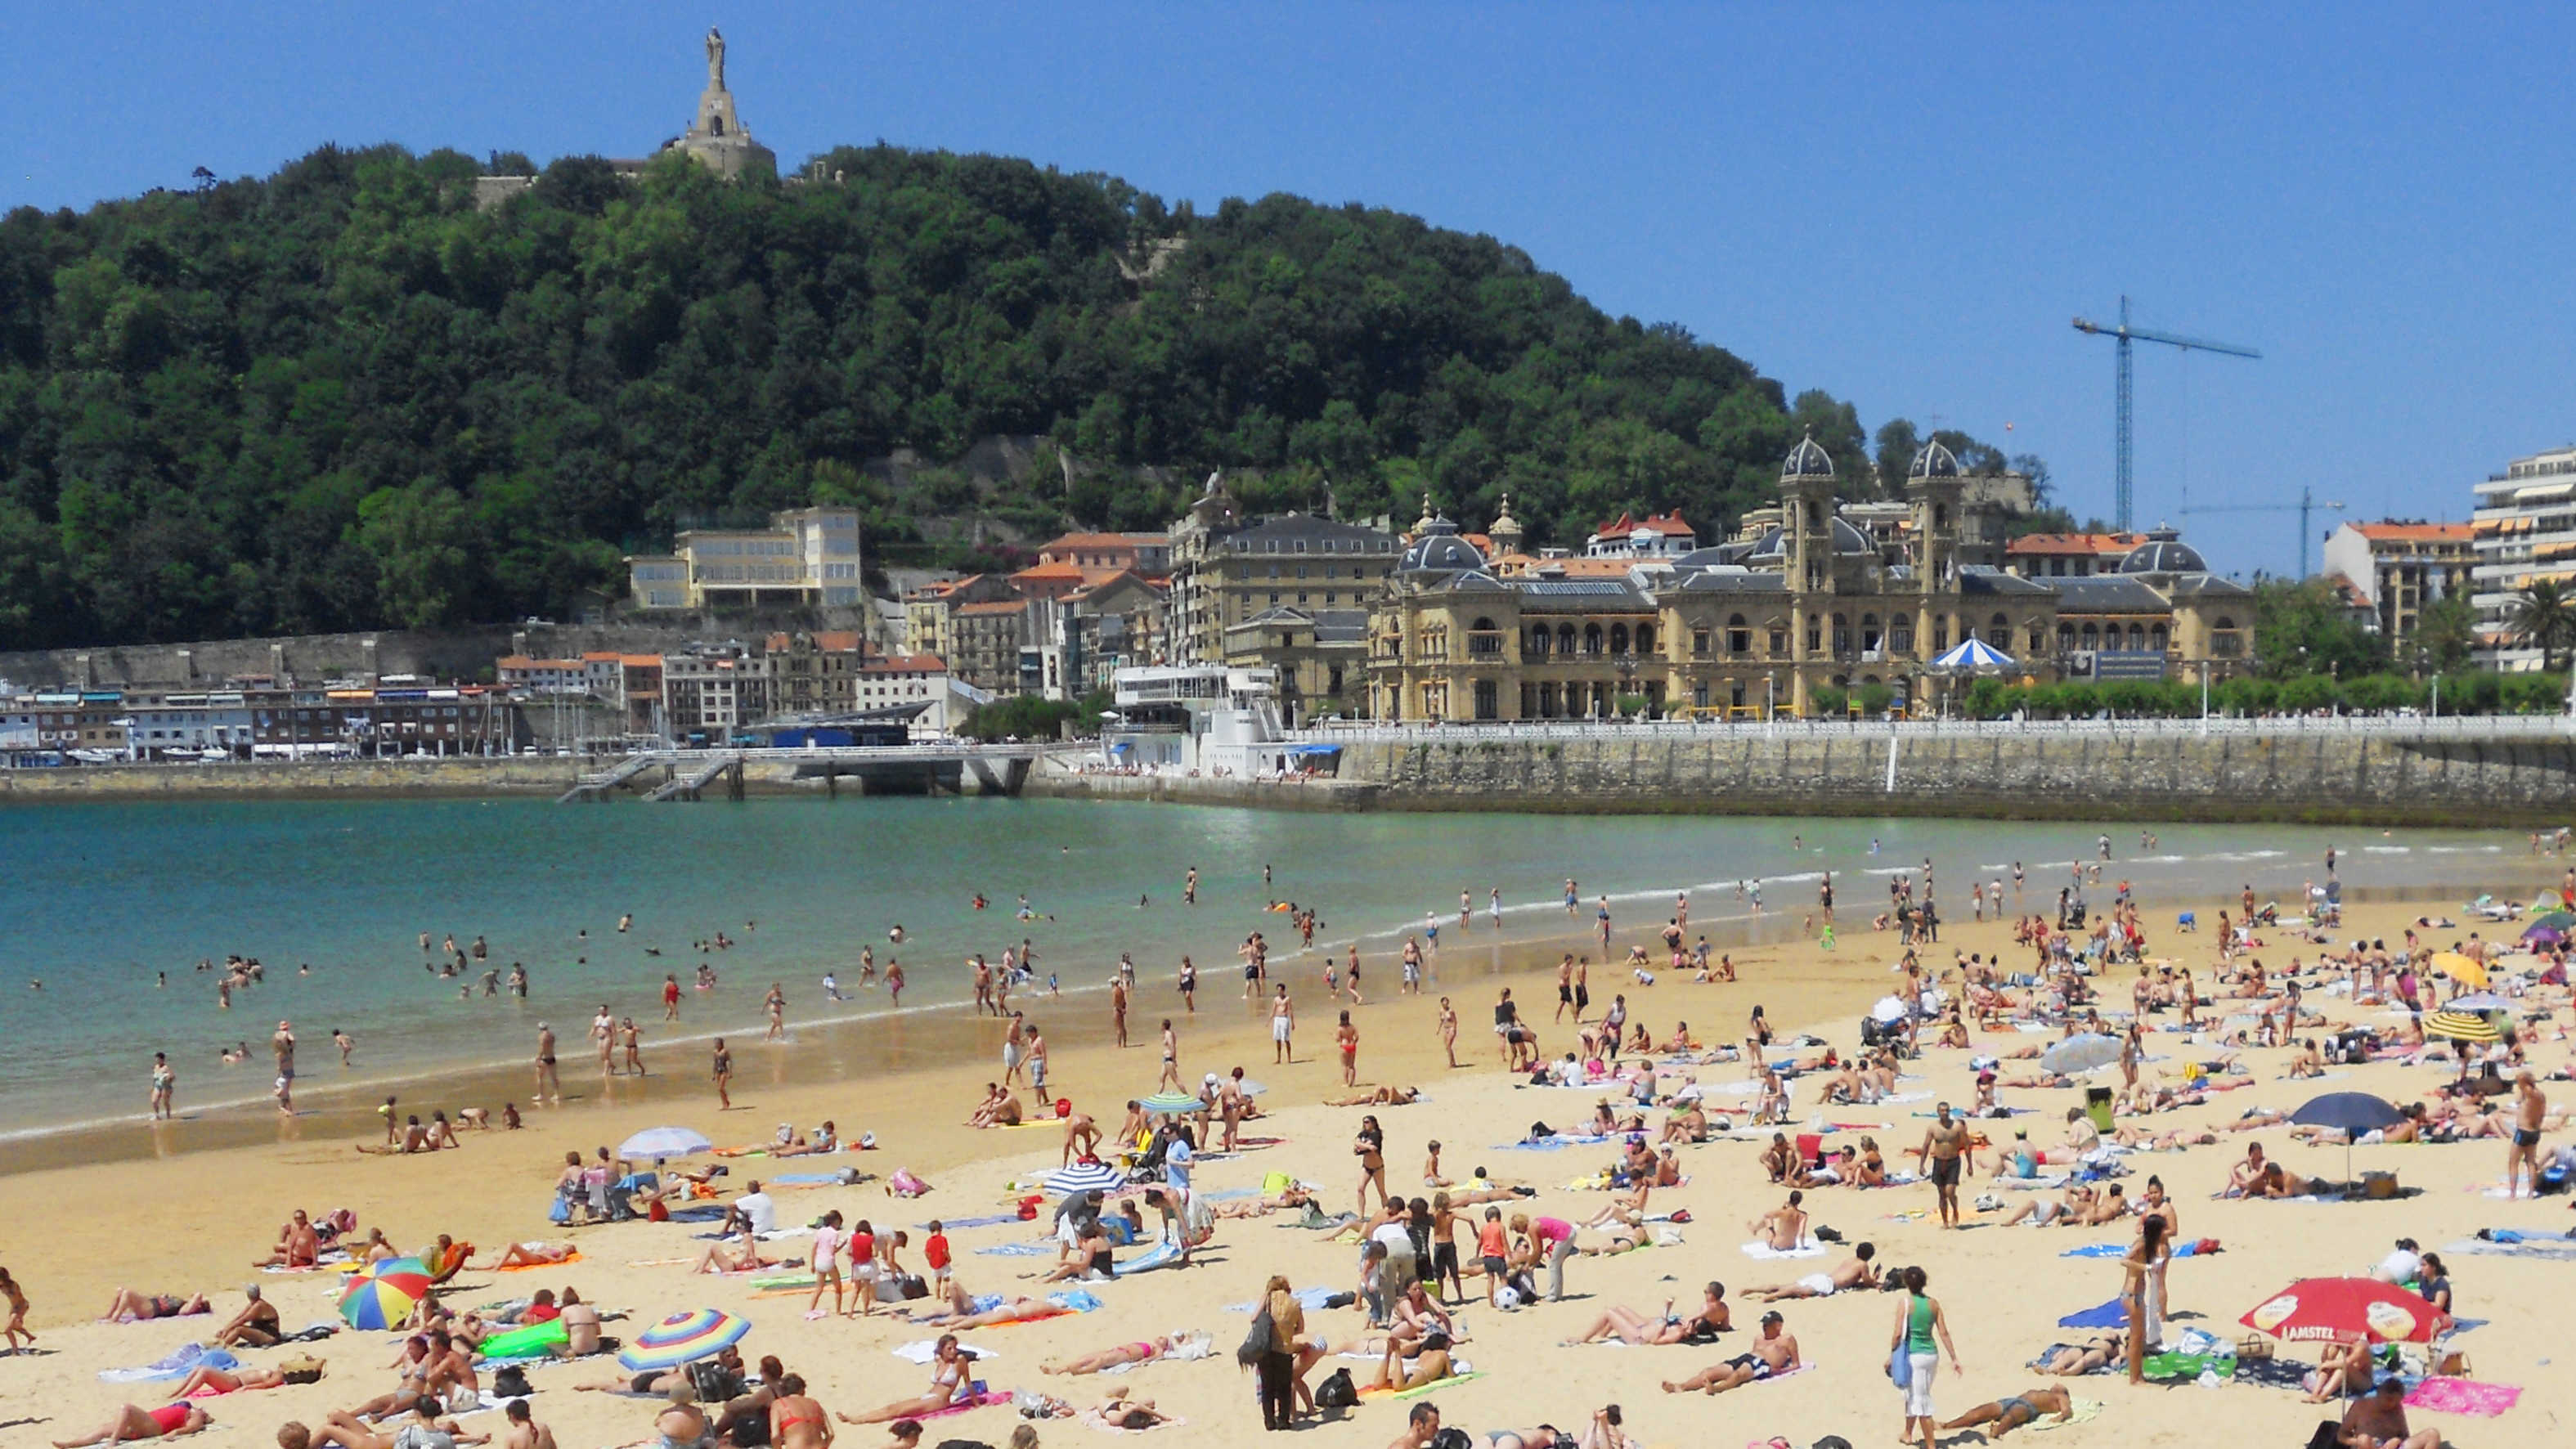 The beach in San Sebastian, Spain